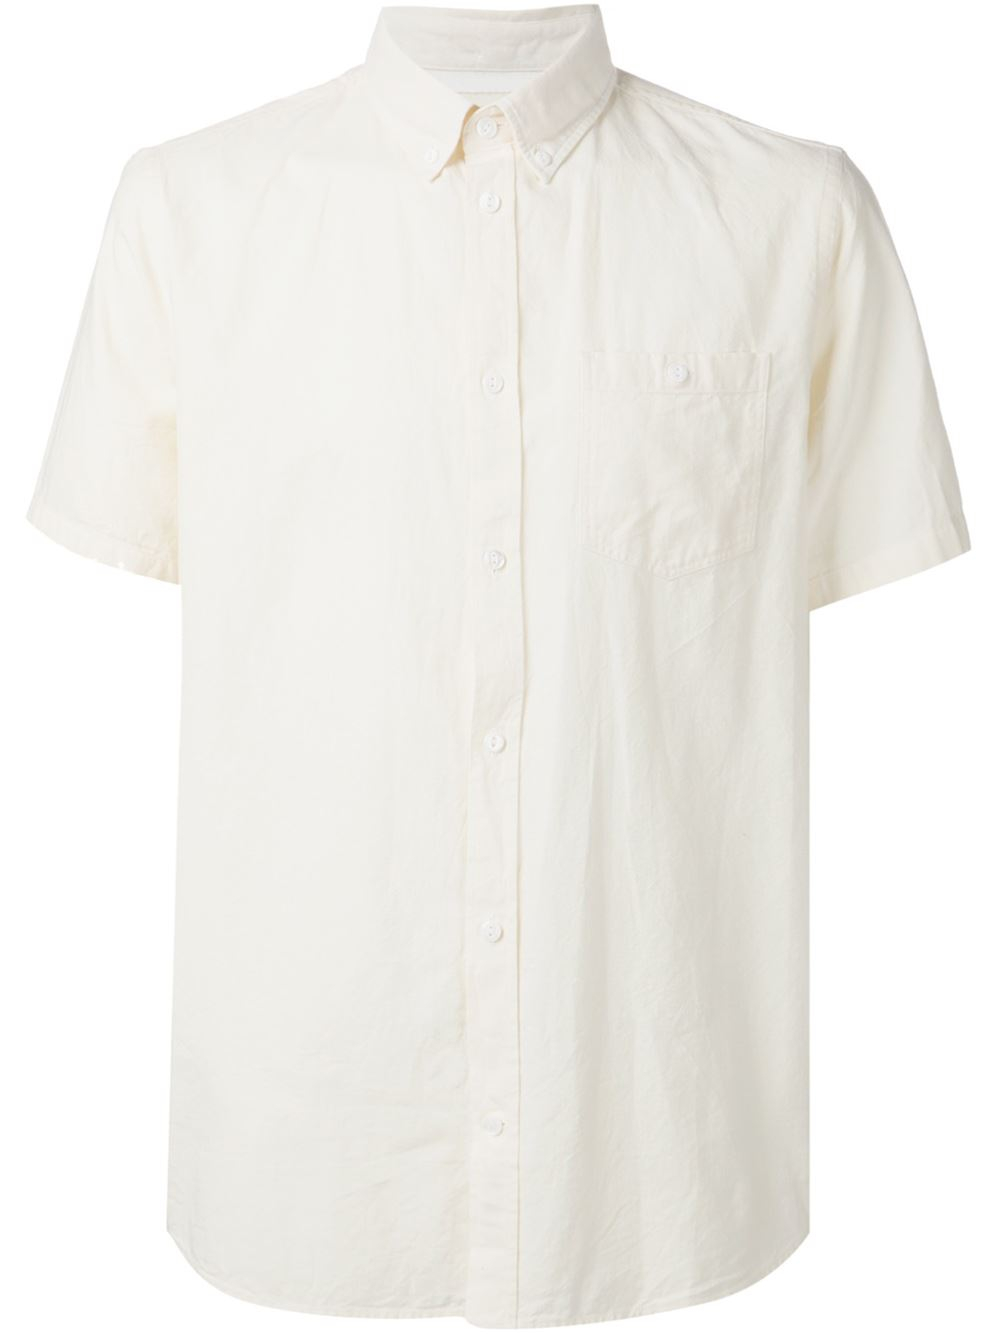 Norse Projects Short Sleeve Button Down Shirt In White For